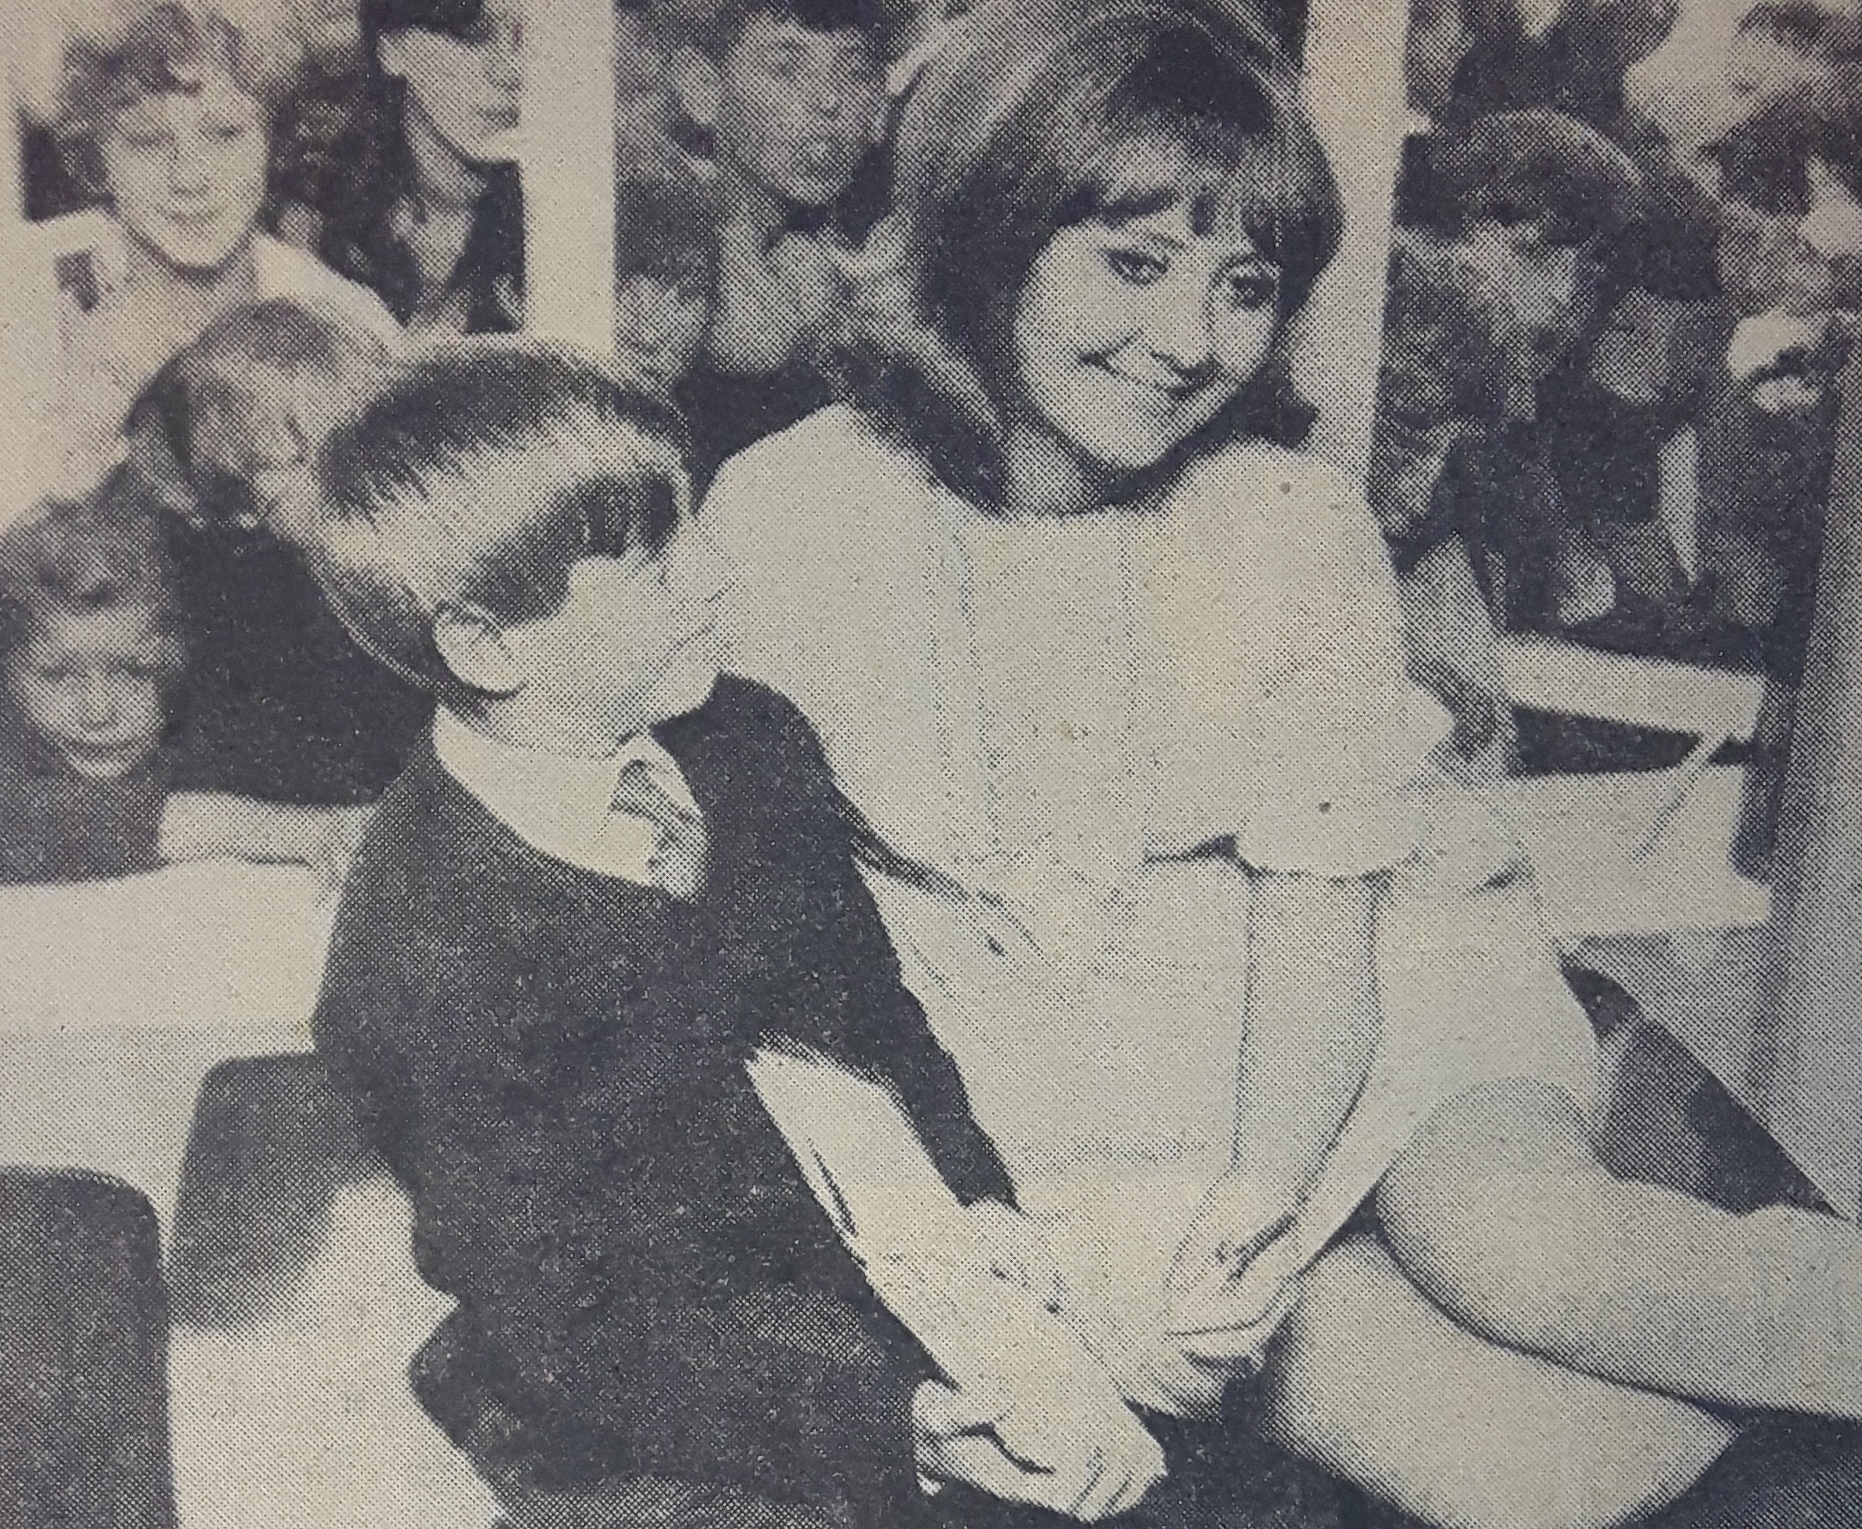 This month marks the 50th anniversary since the singer, Lulu, visited the home of one of her young fans in Bradford